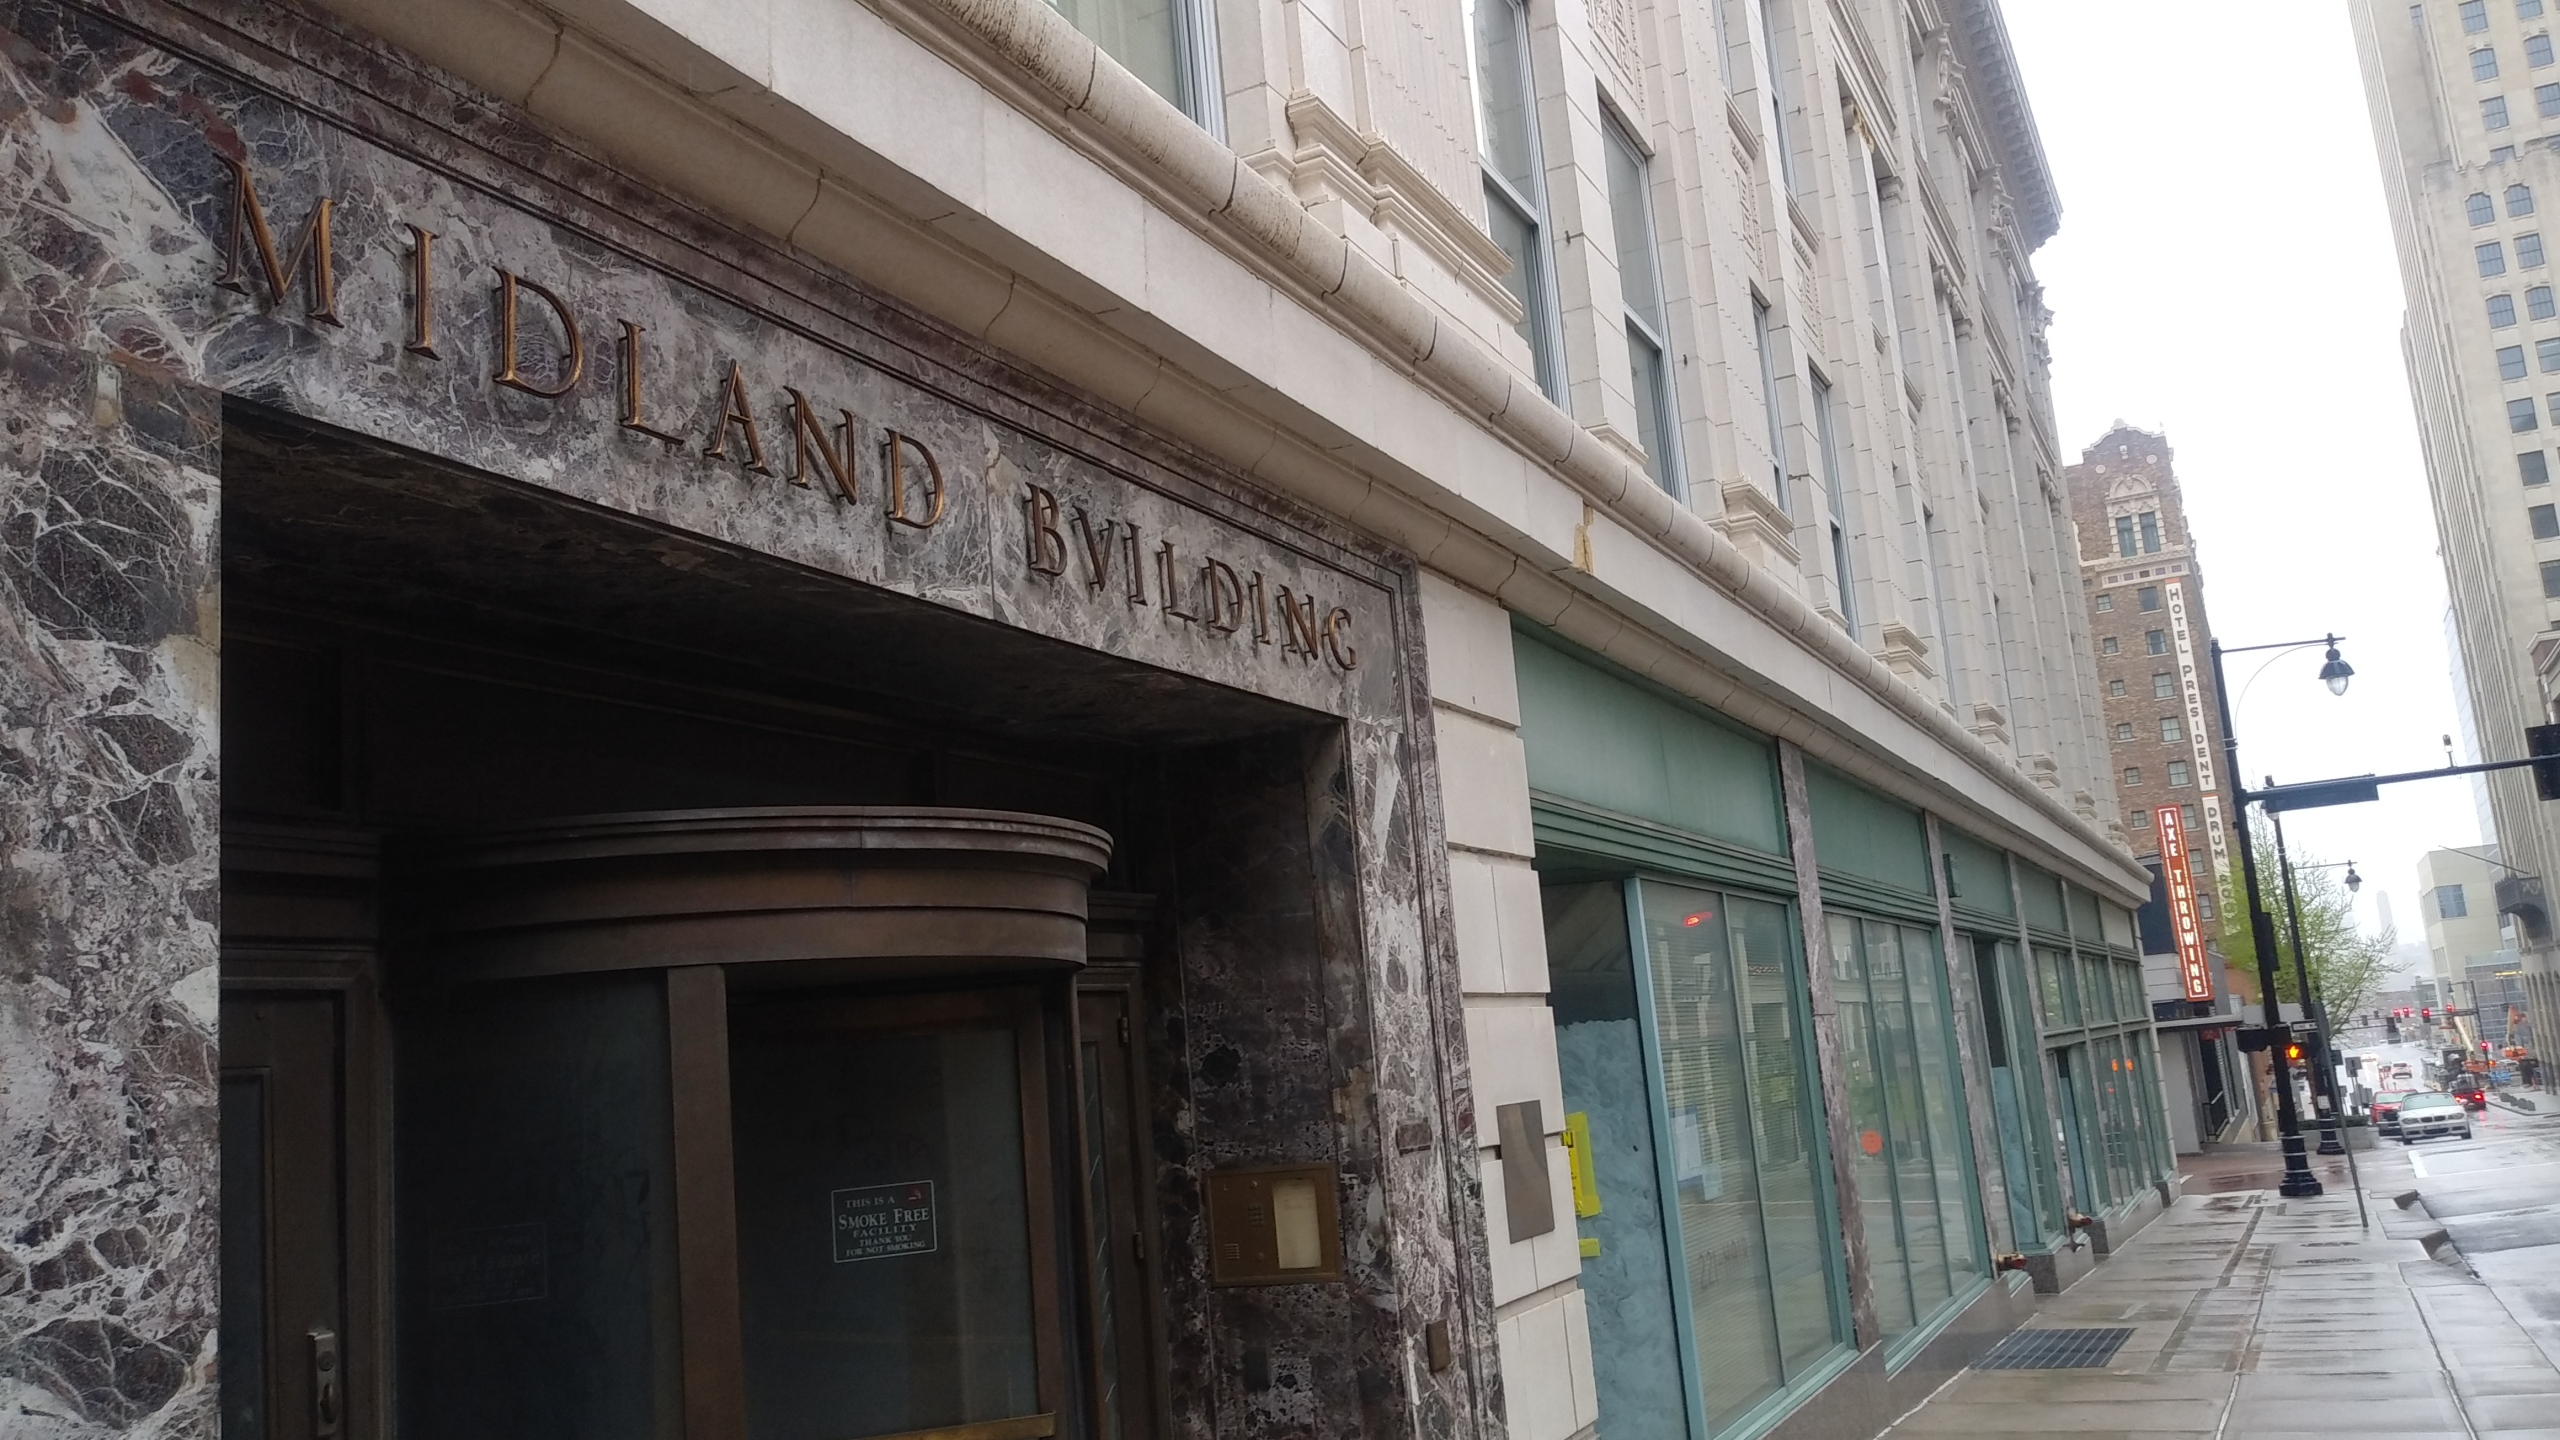 Picture of the Midland building entrance.